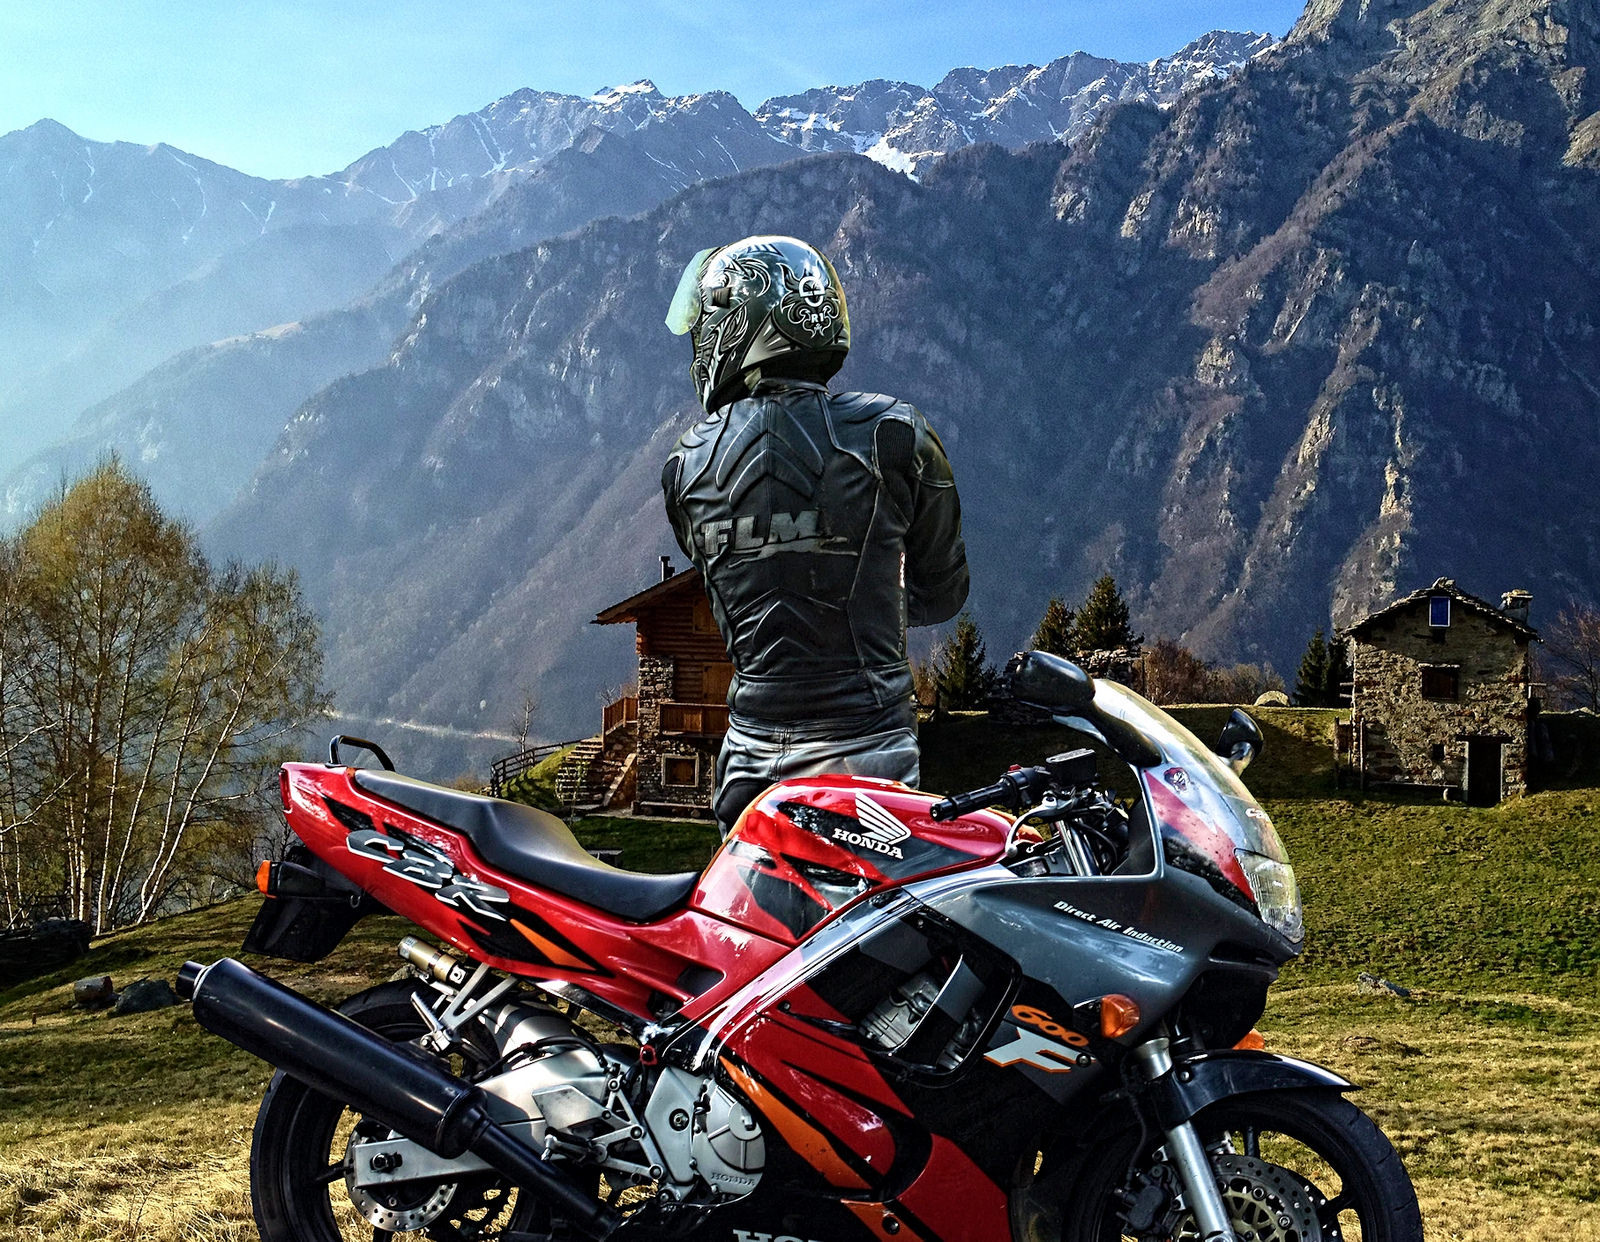 a motorcyclists wearing a helmet after getting off his bike in an idyllic landscape